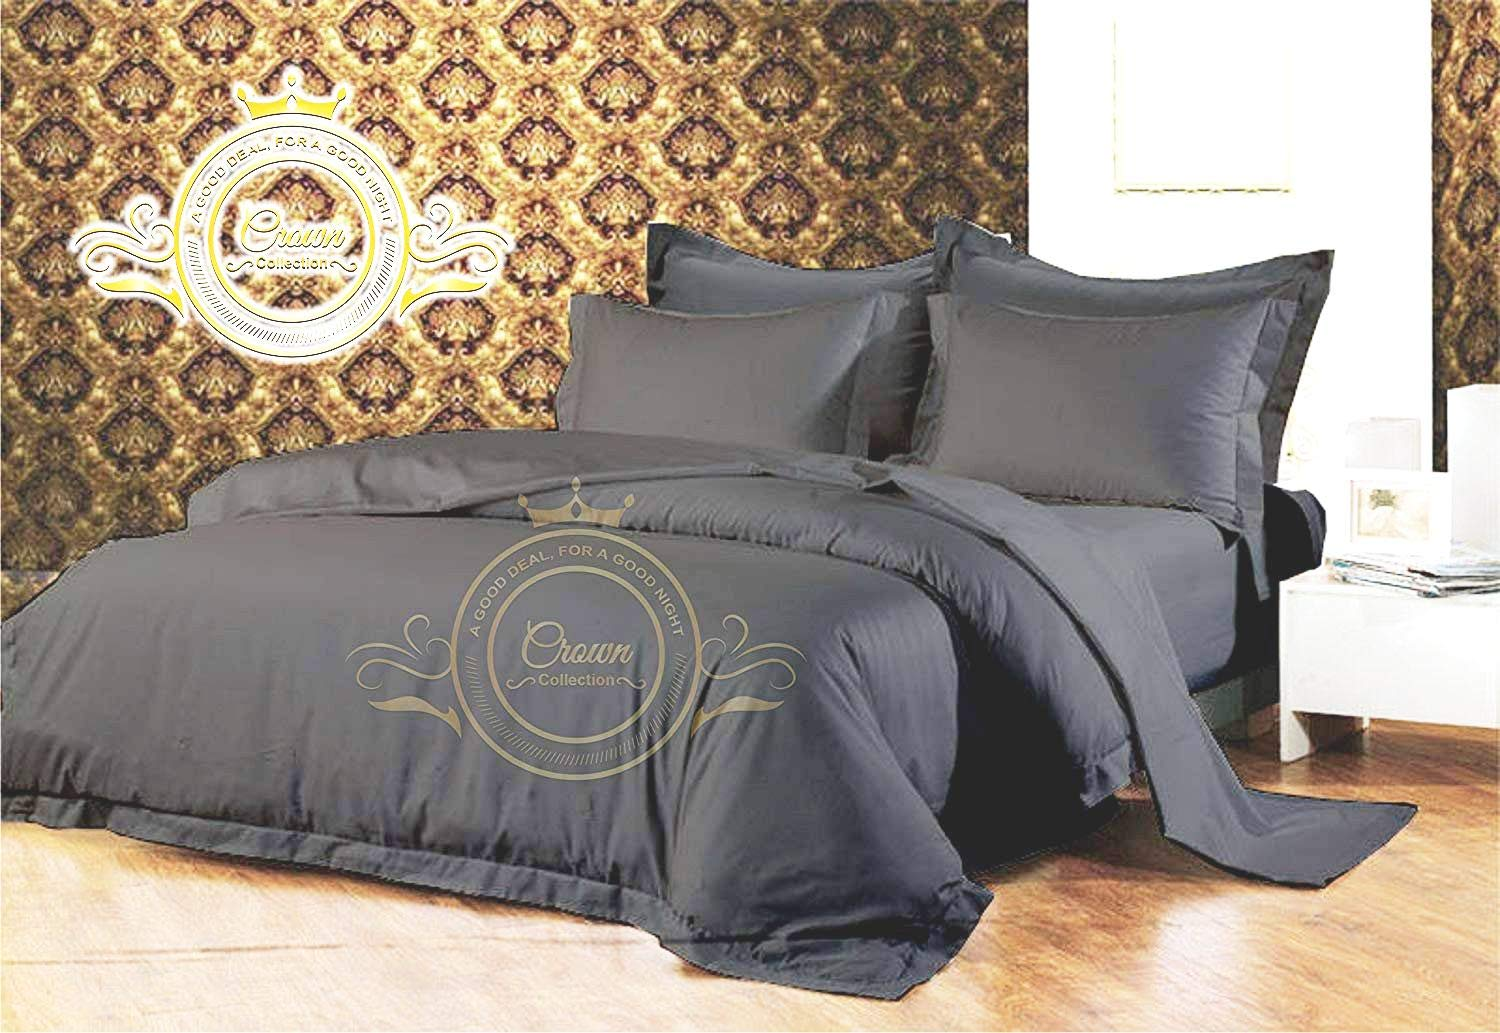 Crown Royal Hotel Collection Export Quality 850 Thread Count Egyptian Cotton Queen Size Duvet Cover/Dona Cover with Zipper Closer Dark Gray Solid